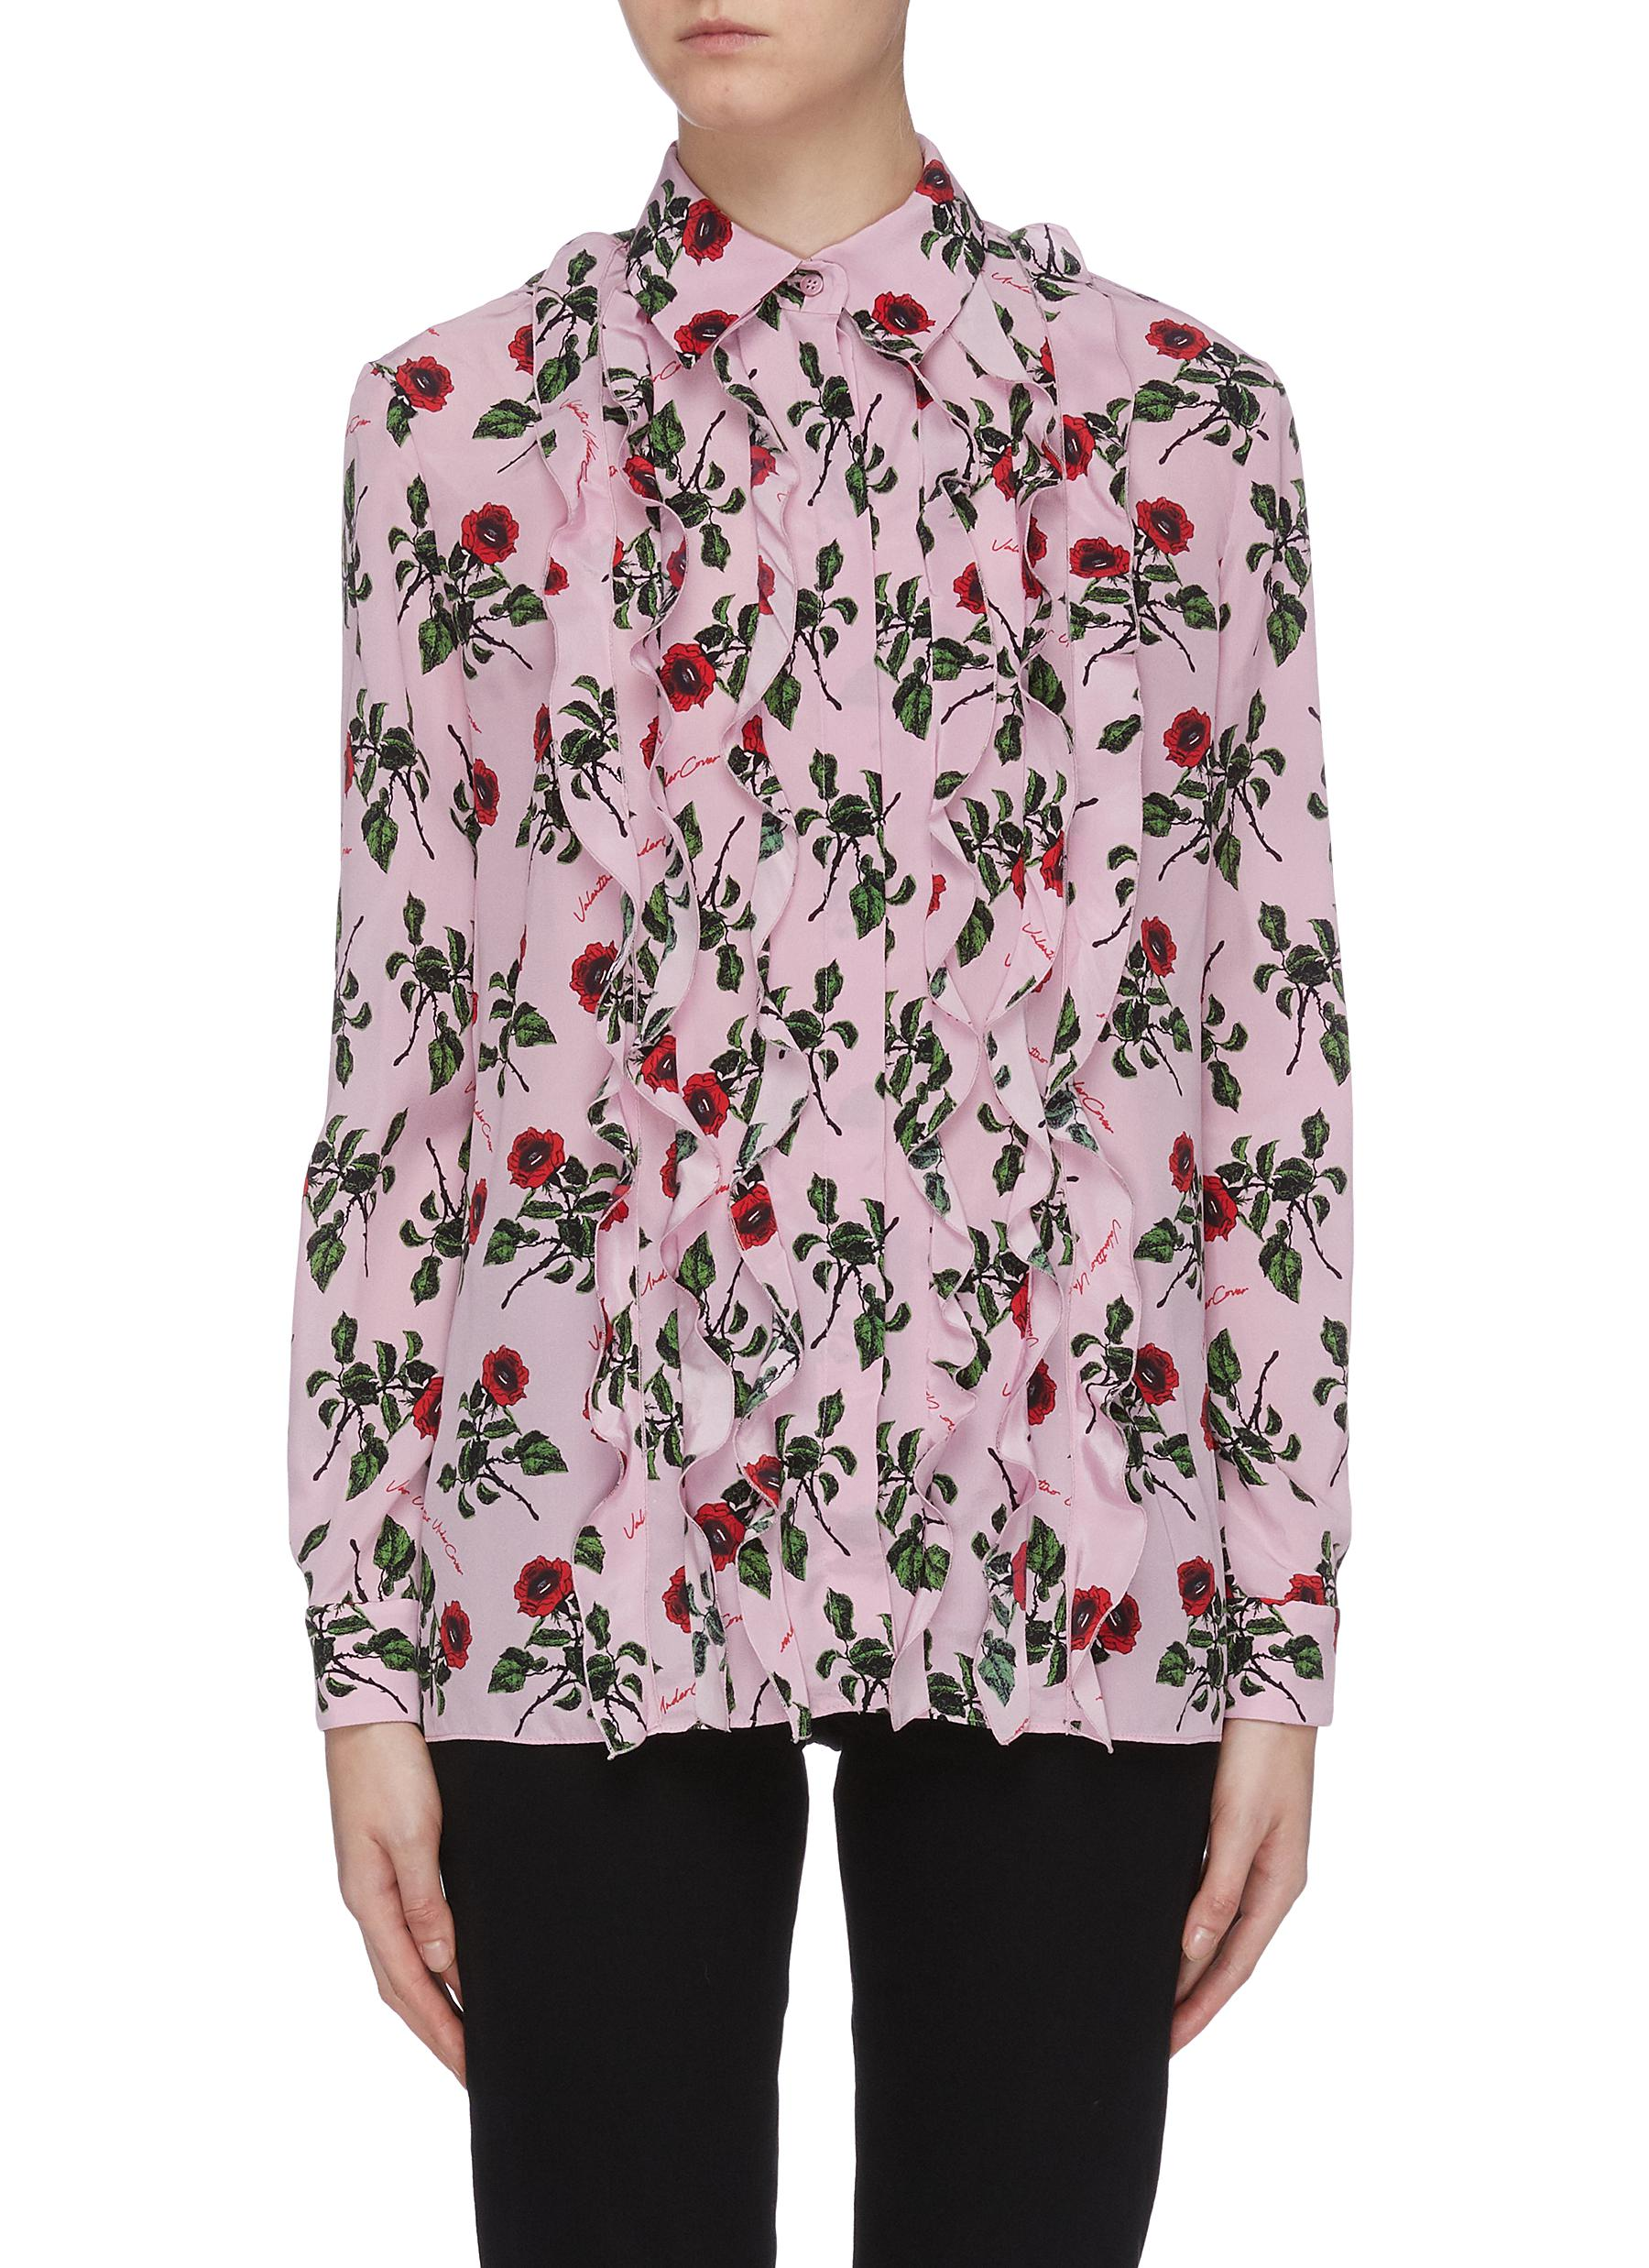 x UNDERCOVER ruffle rose print shirt by Valentino